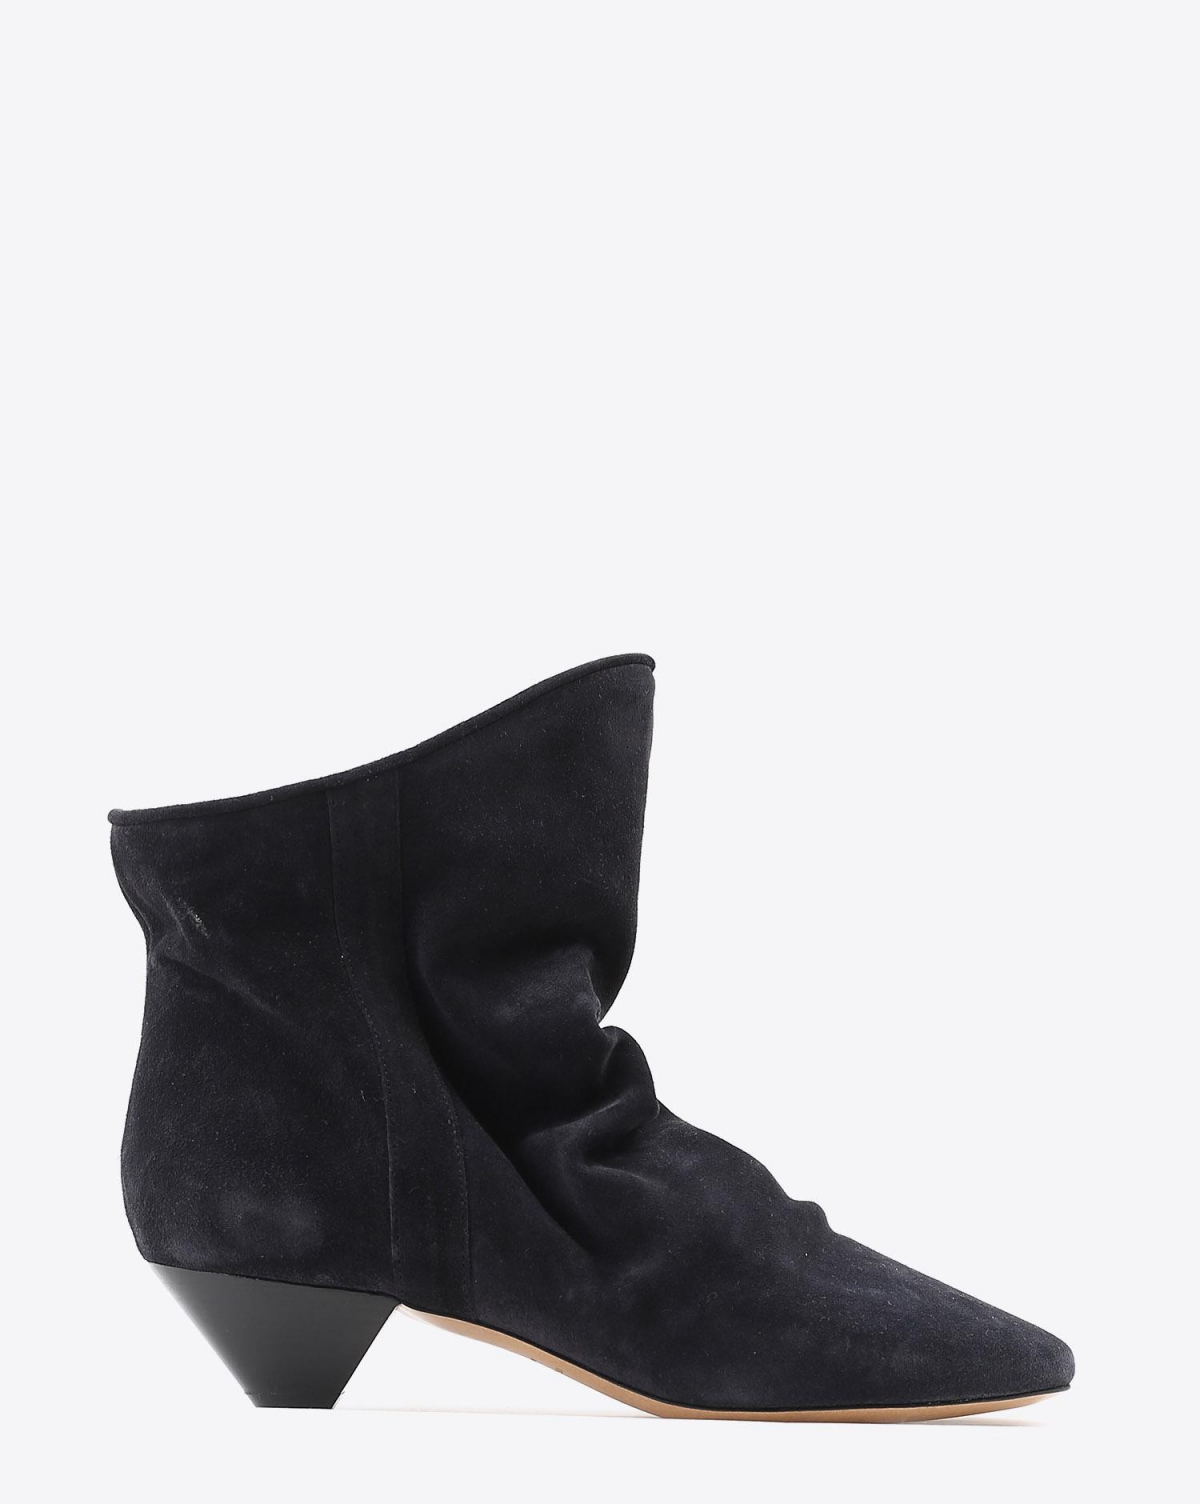 Isabel Marant Chaussures Boots DOEY - Suede Faded Black